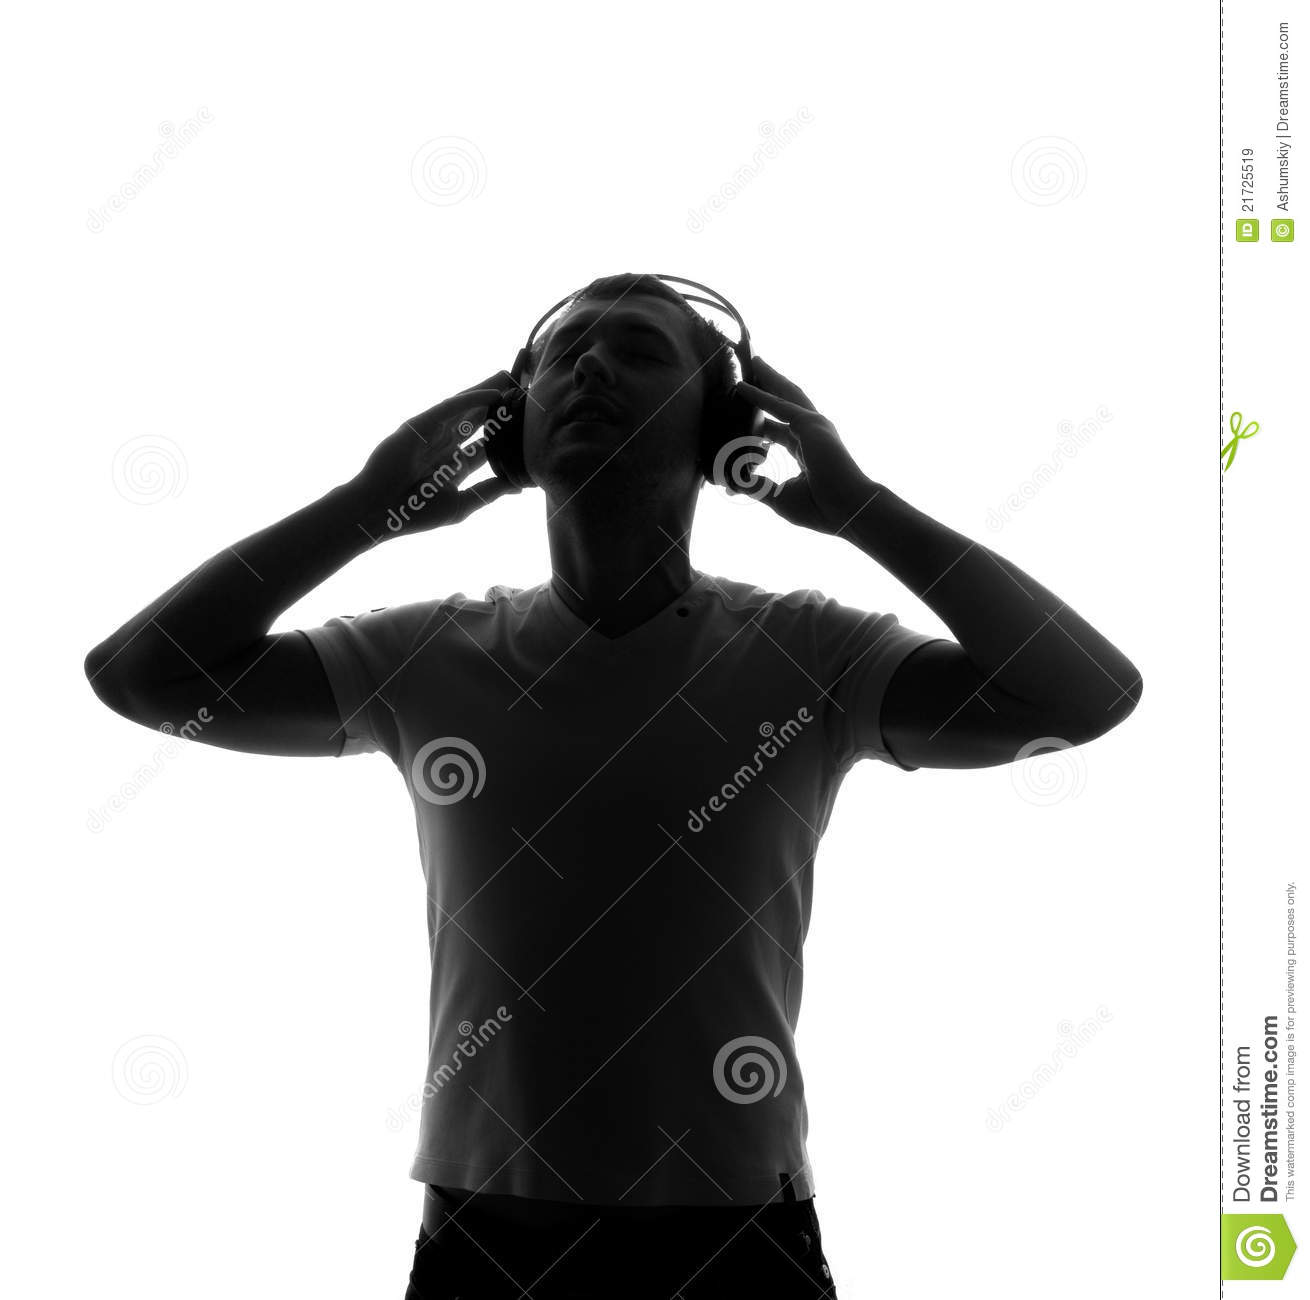 Tune Up Prices >> Silhouette Of DJ With Headphones Stock Image - Image: 21725519